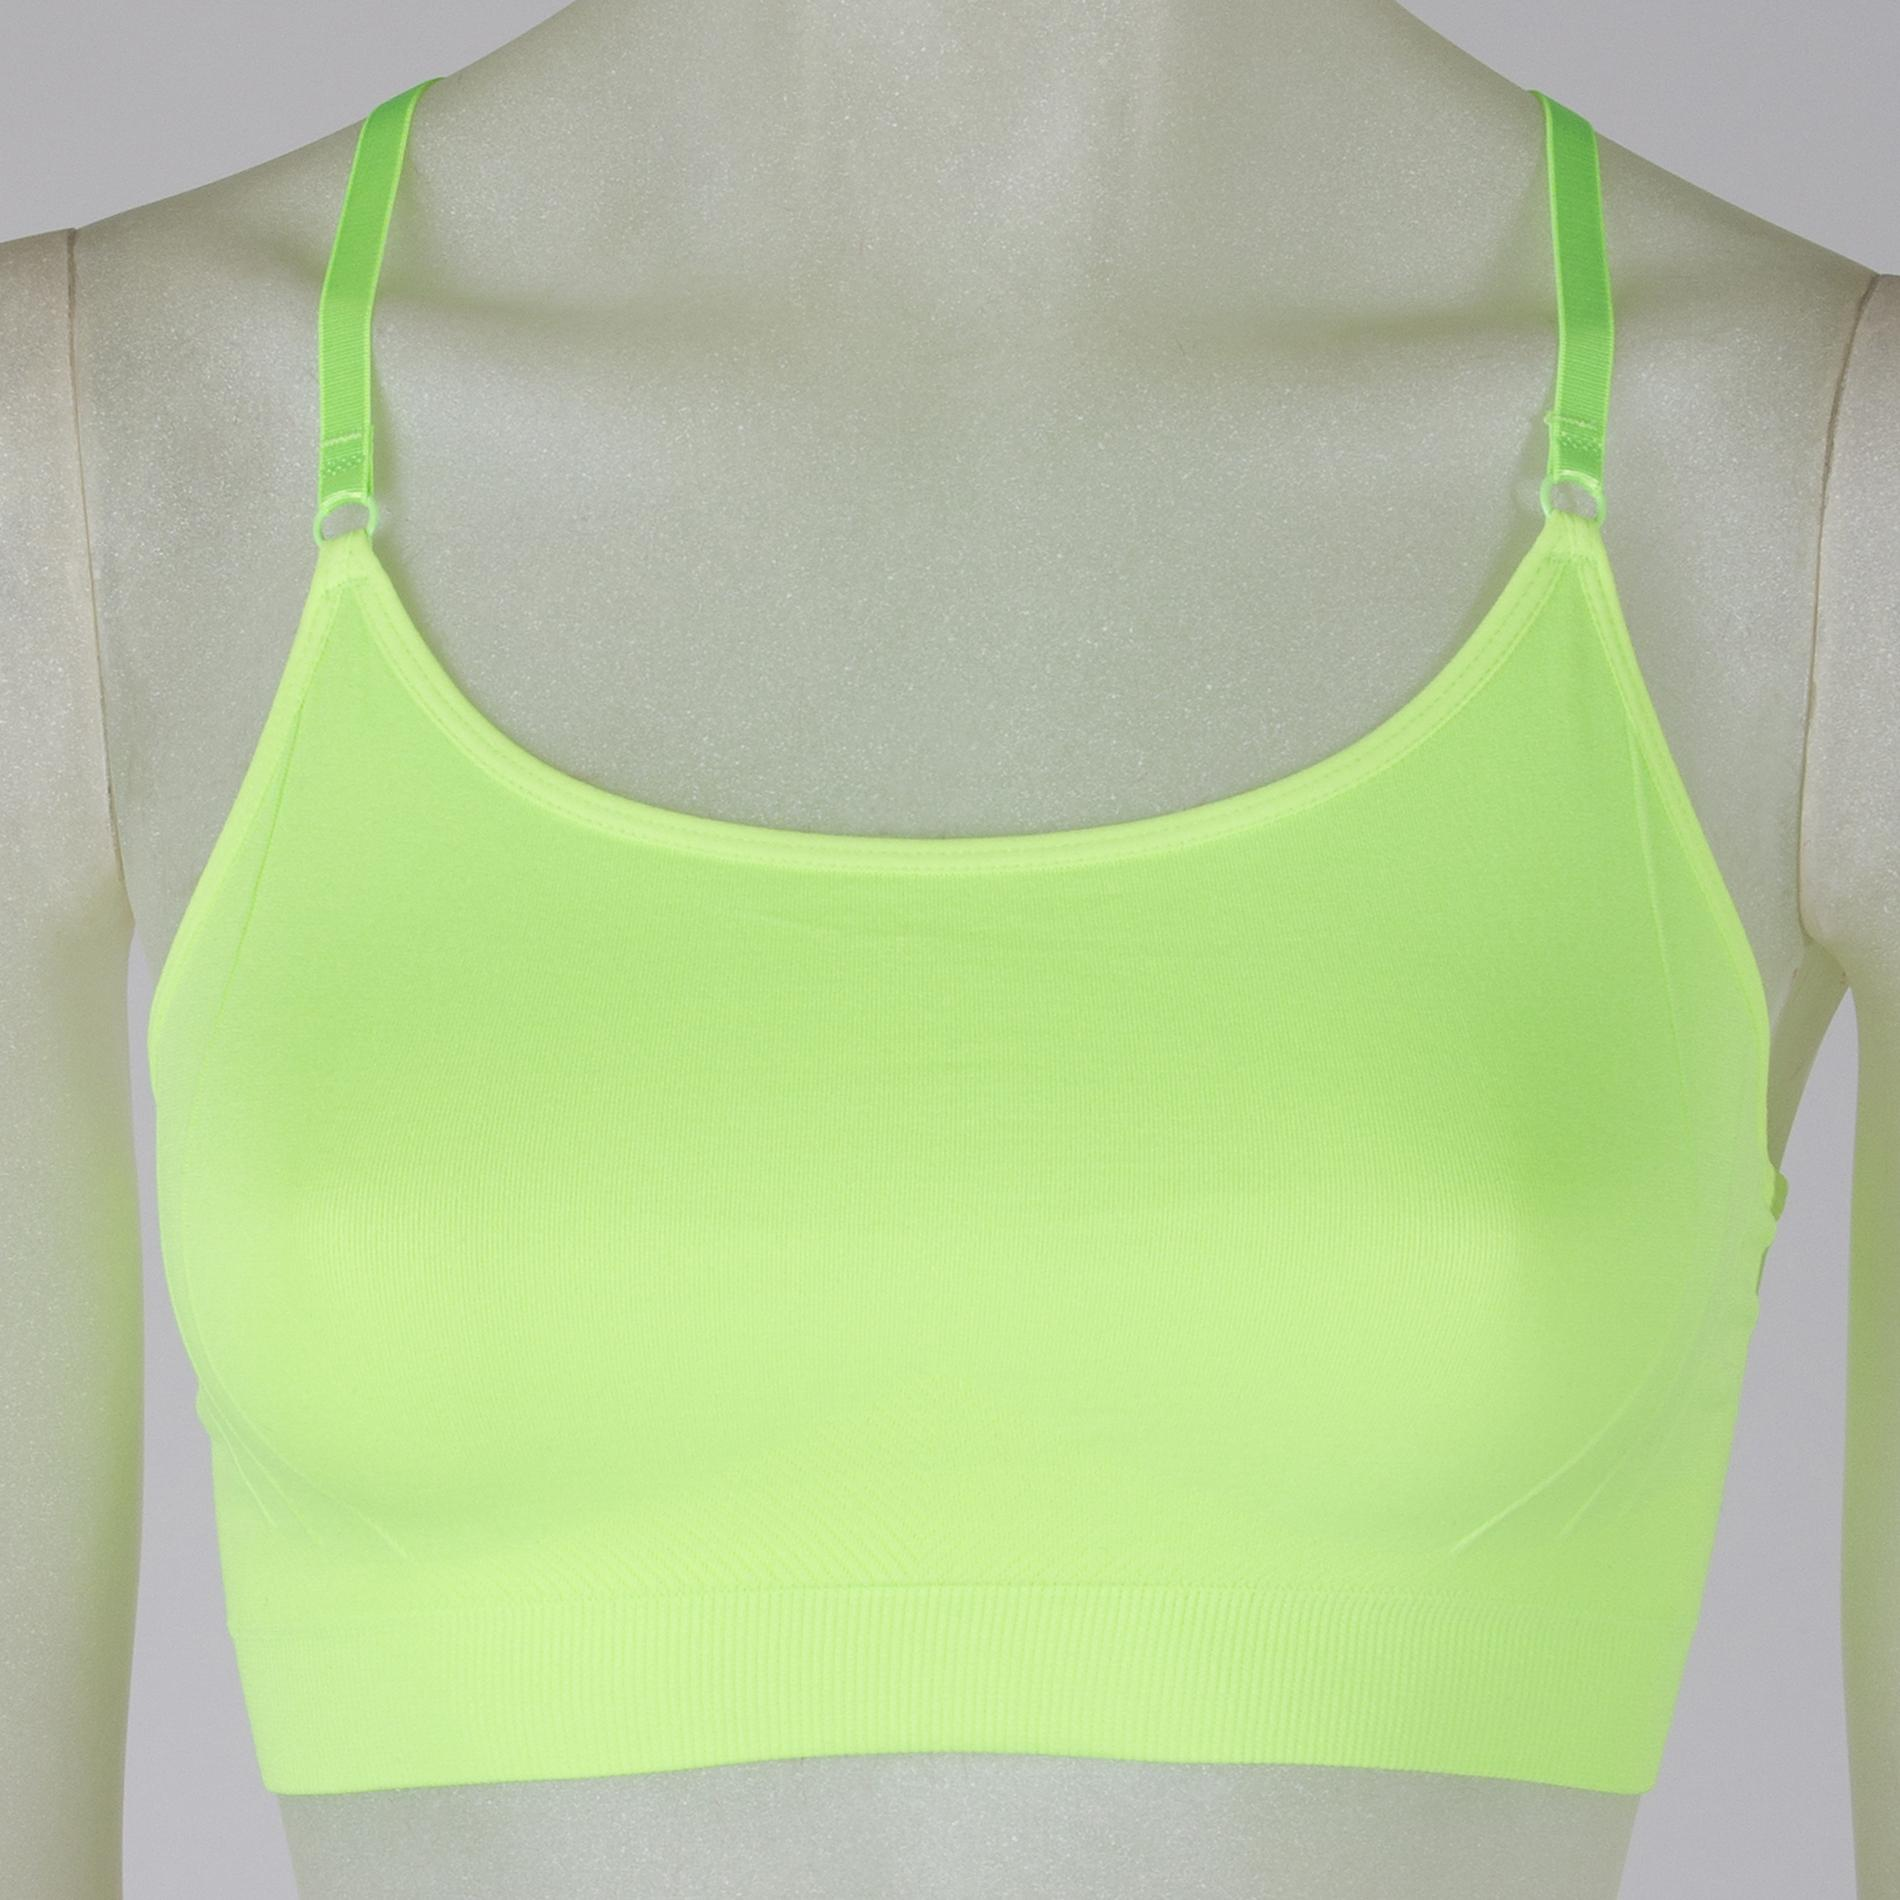 Everlast® Women's Sports Bra at Sears.com